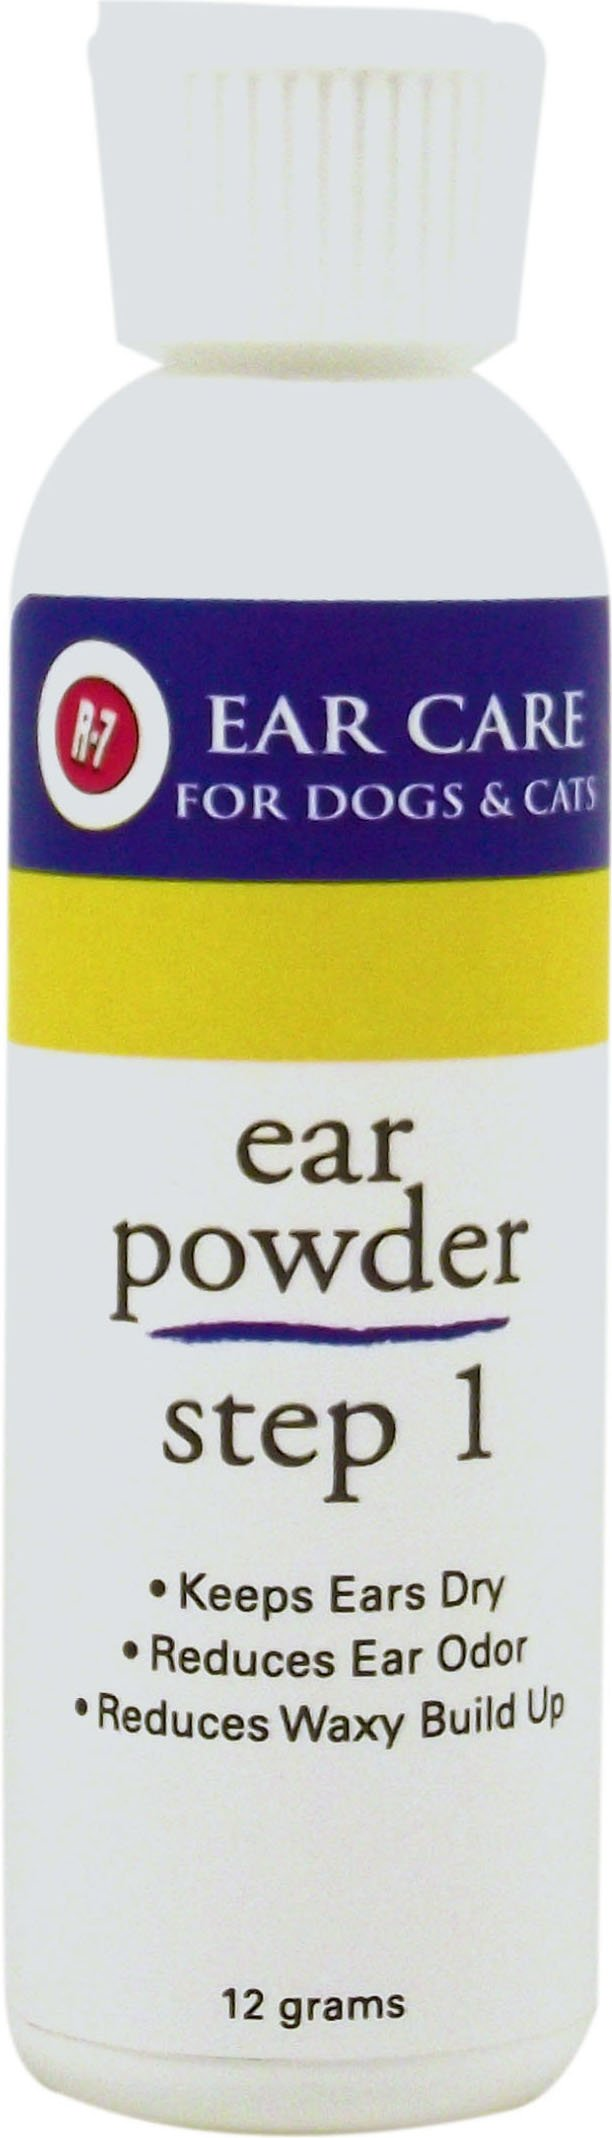 Miracle Care Ear Care Solutions 12g Powder